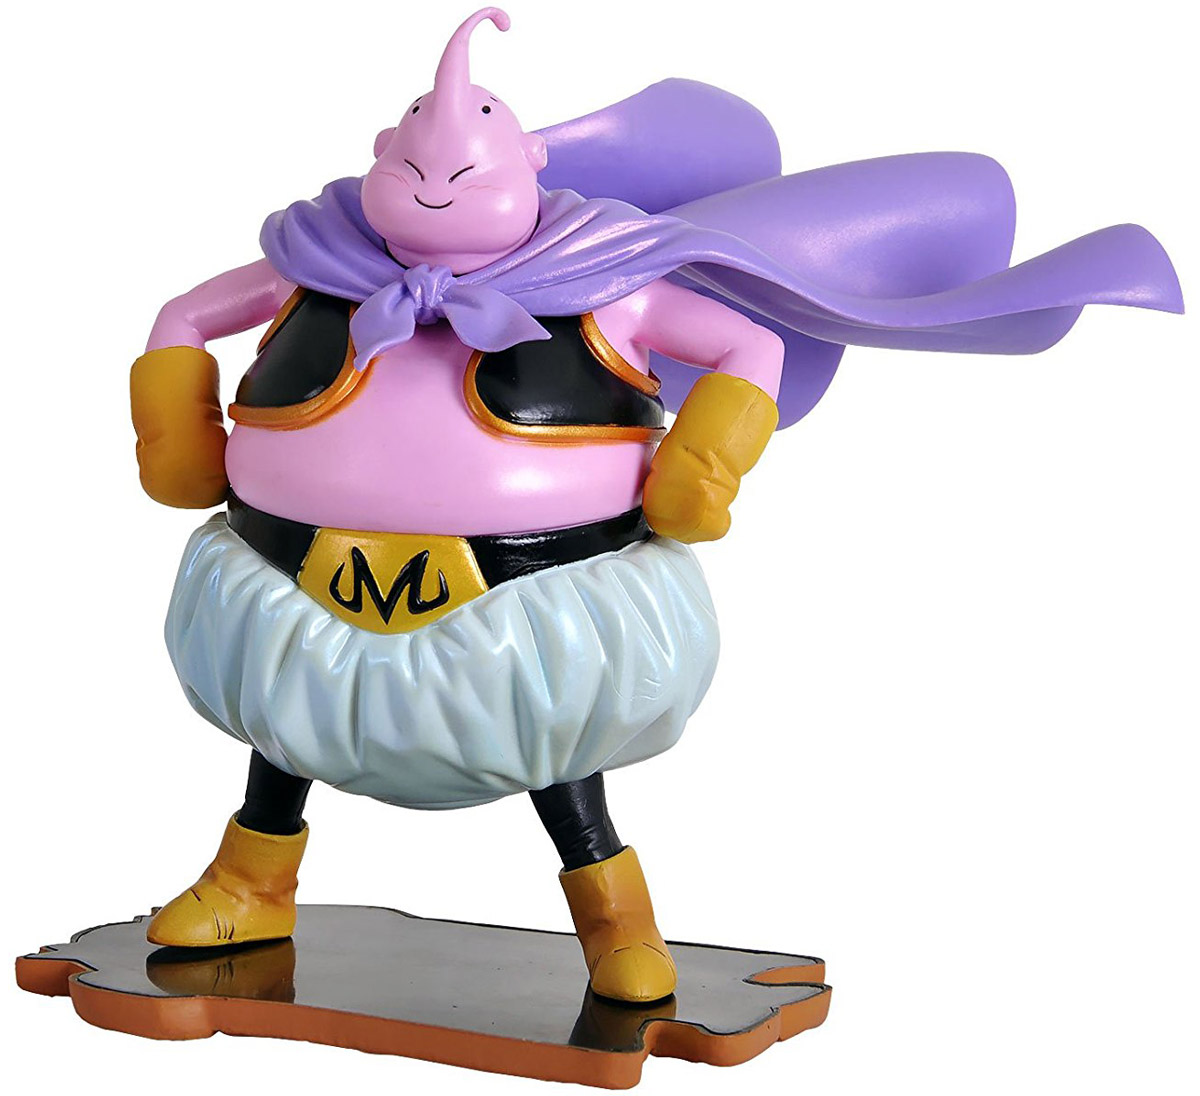 Bandai Фигурка Dragon Ball Z Pastel Color ver. Majin Boo 160mm japanese original anime figure dragon ball buruma action figure collectible model toys for boys